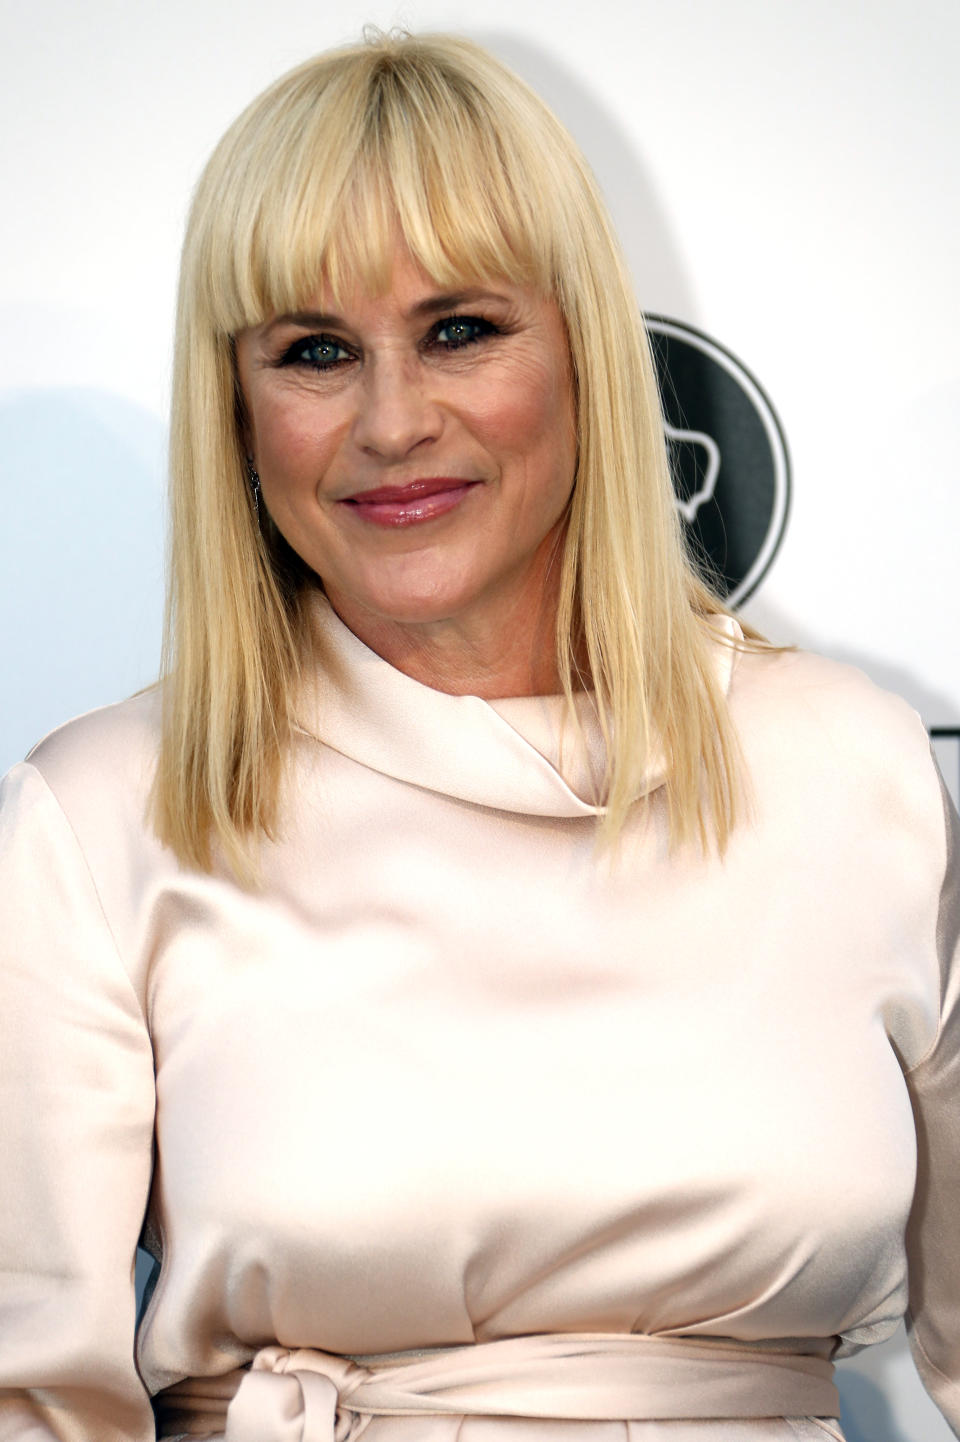 72nd Cannes Film Festival - The amfAR's Cinema Against AIDS 2019 event - Antibes, France, May 23, 2019. Patricia Arquette poses. REUTERS/Eric Gaillard